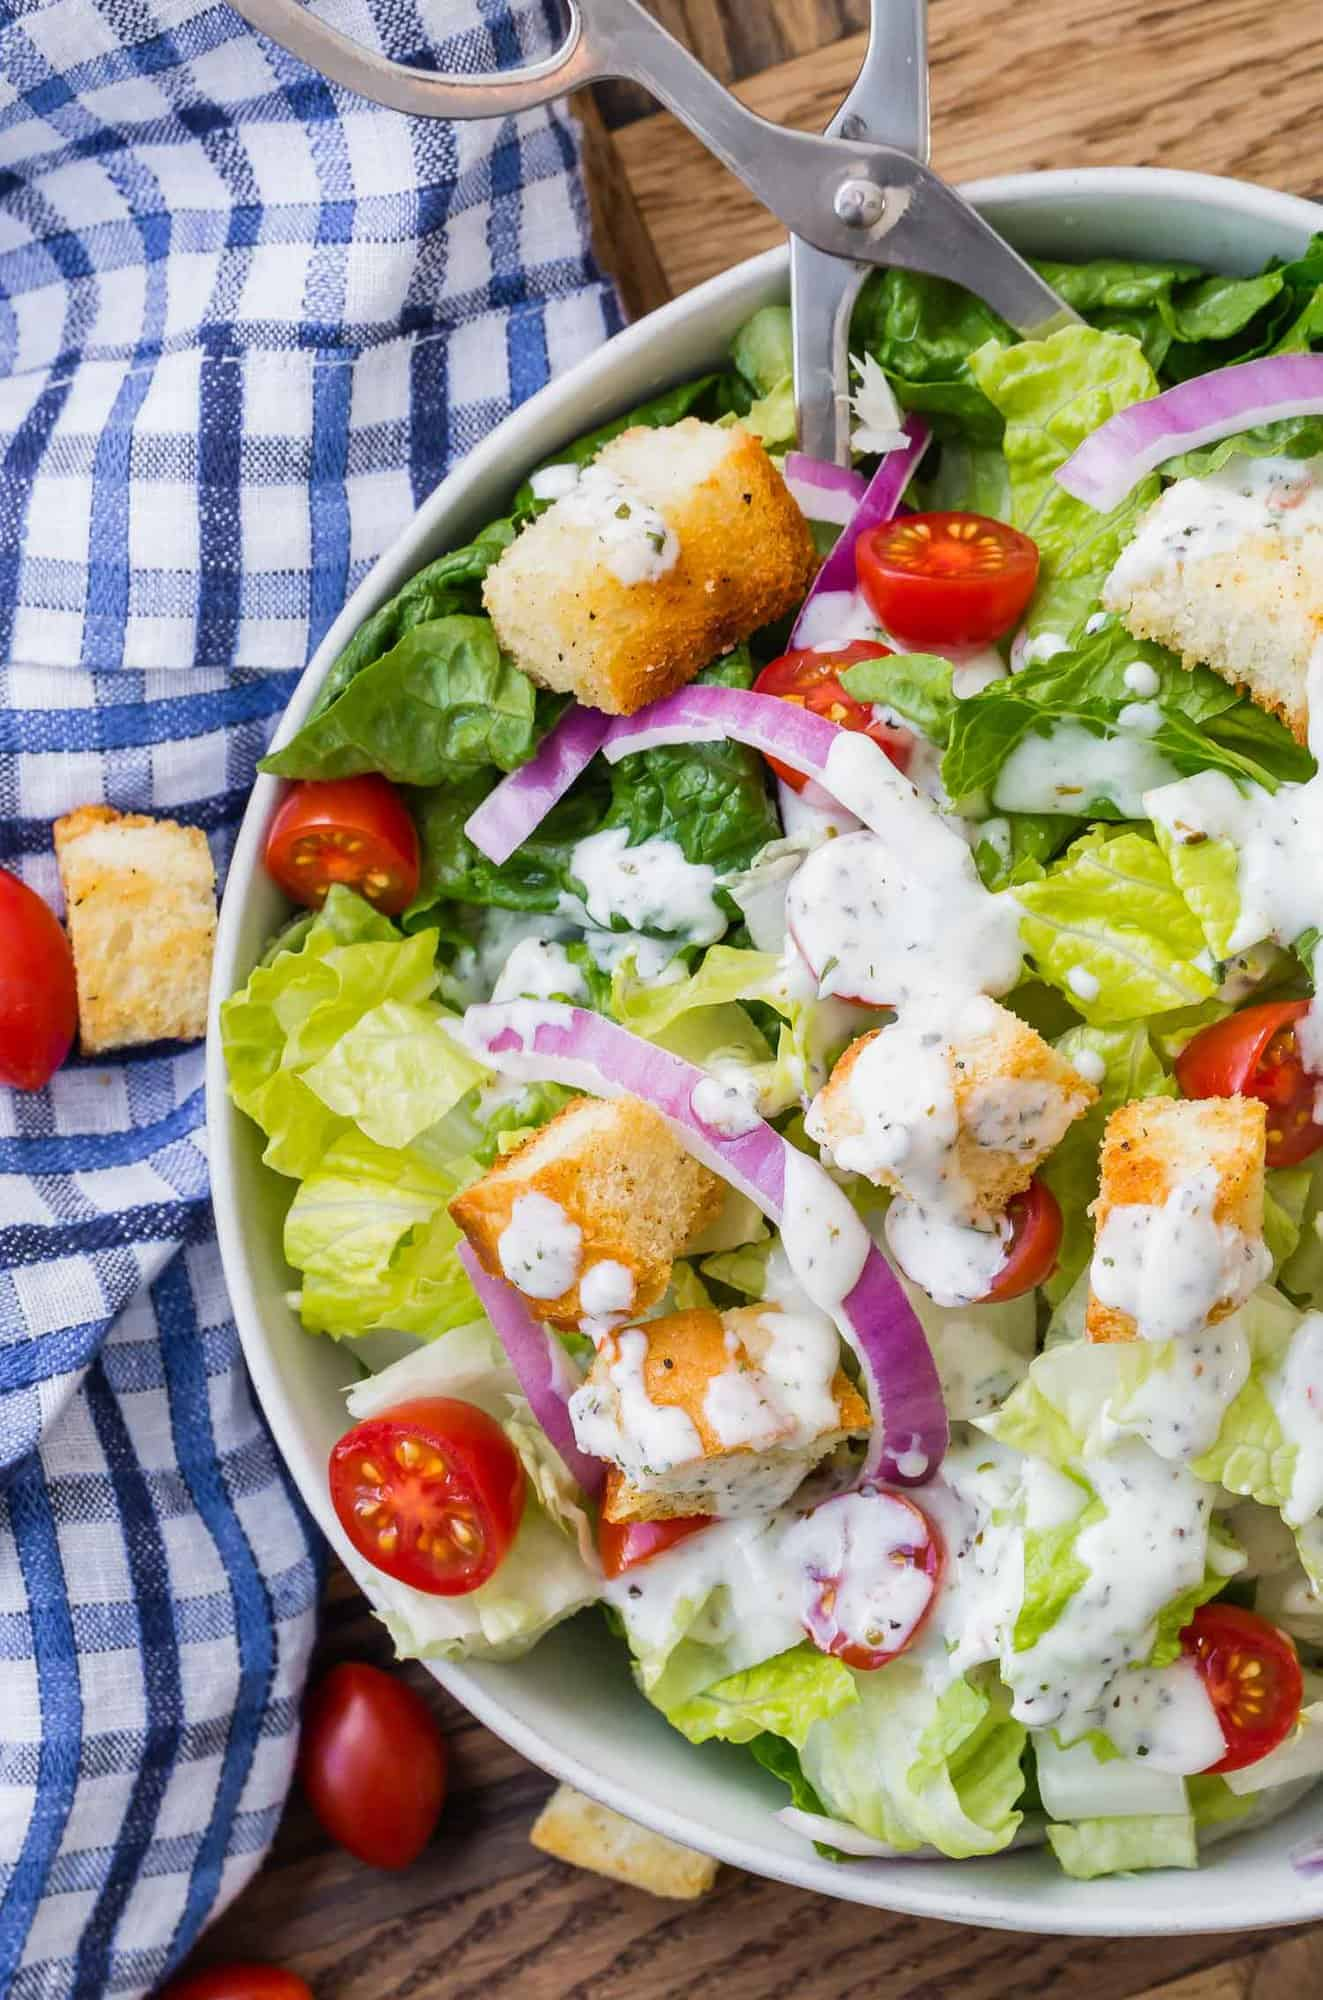 Tossed green salad with creamy white dressing.